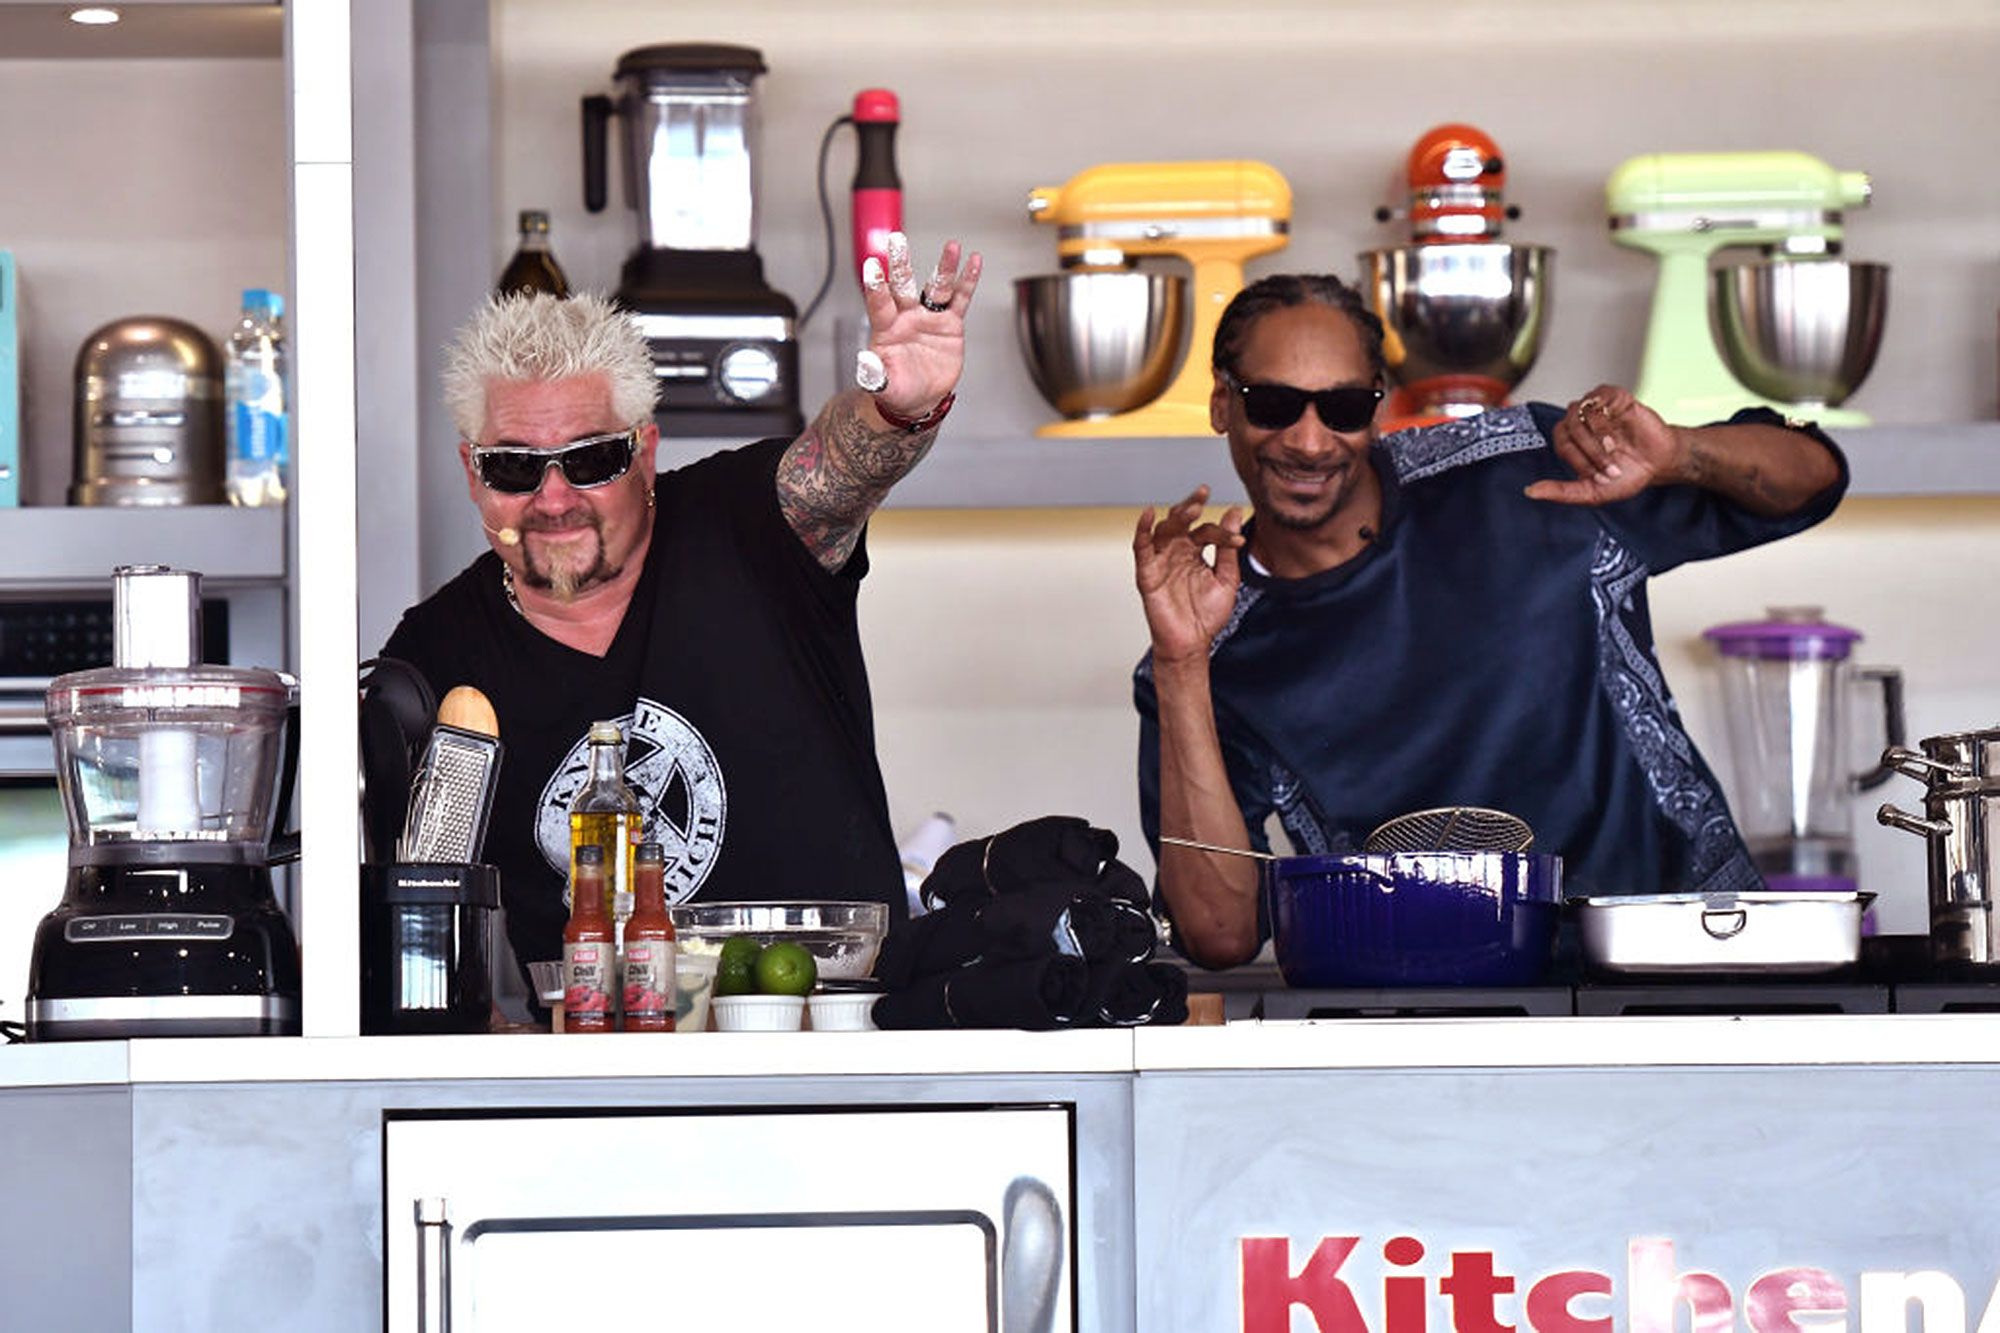 MIAMI BEACH, FL - FEBRUARY 25: Guy Fieri and Snoop Dogg cook on stage at Goya Foods' Grand Tasting Village Featuring Mastercard Grand Tasting Tents & KitchenAid Culinary Demonstrations on February 25, 2017 in Miami Beach, Florida. (Photo by Gustavo Caballero/Getty Images for SOBEWFF)